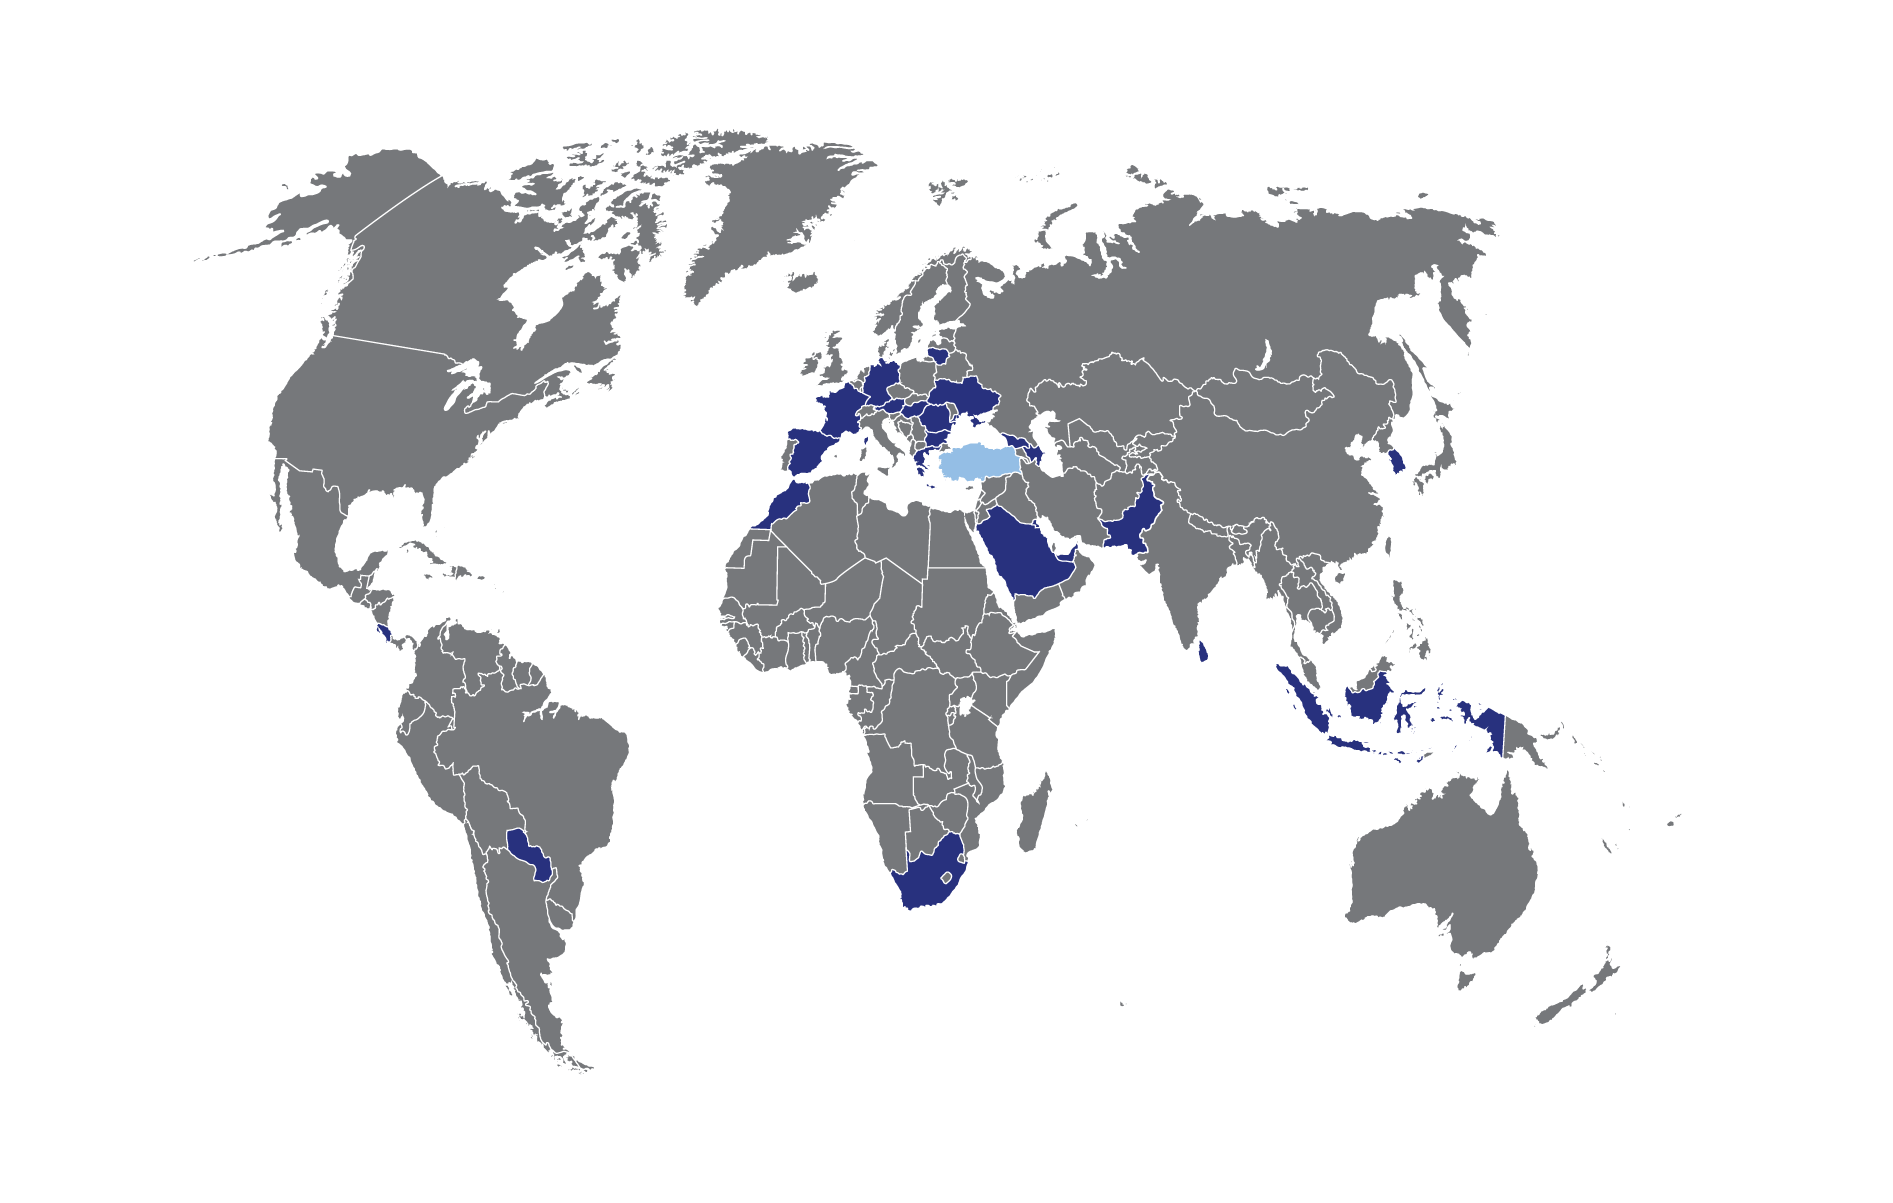 Inspramed World Map with D.med & Production site (Turkey) locations marked